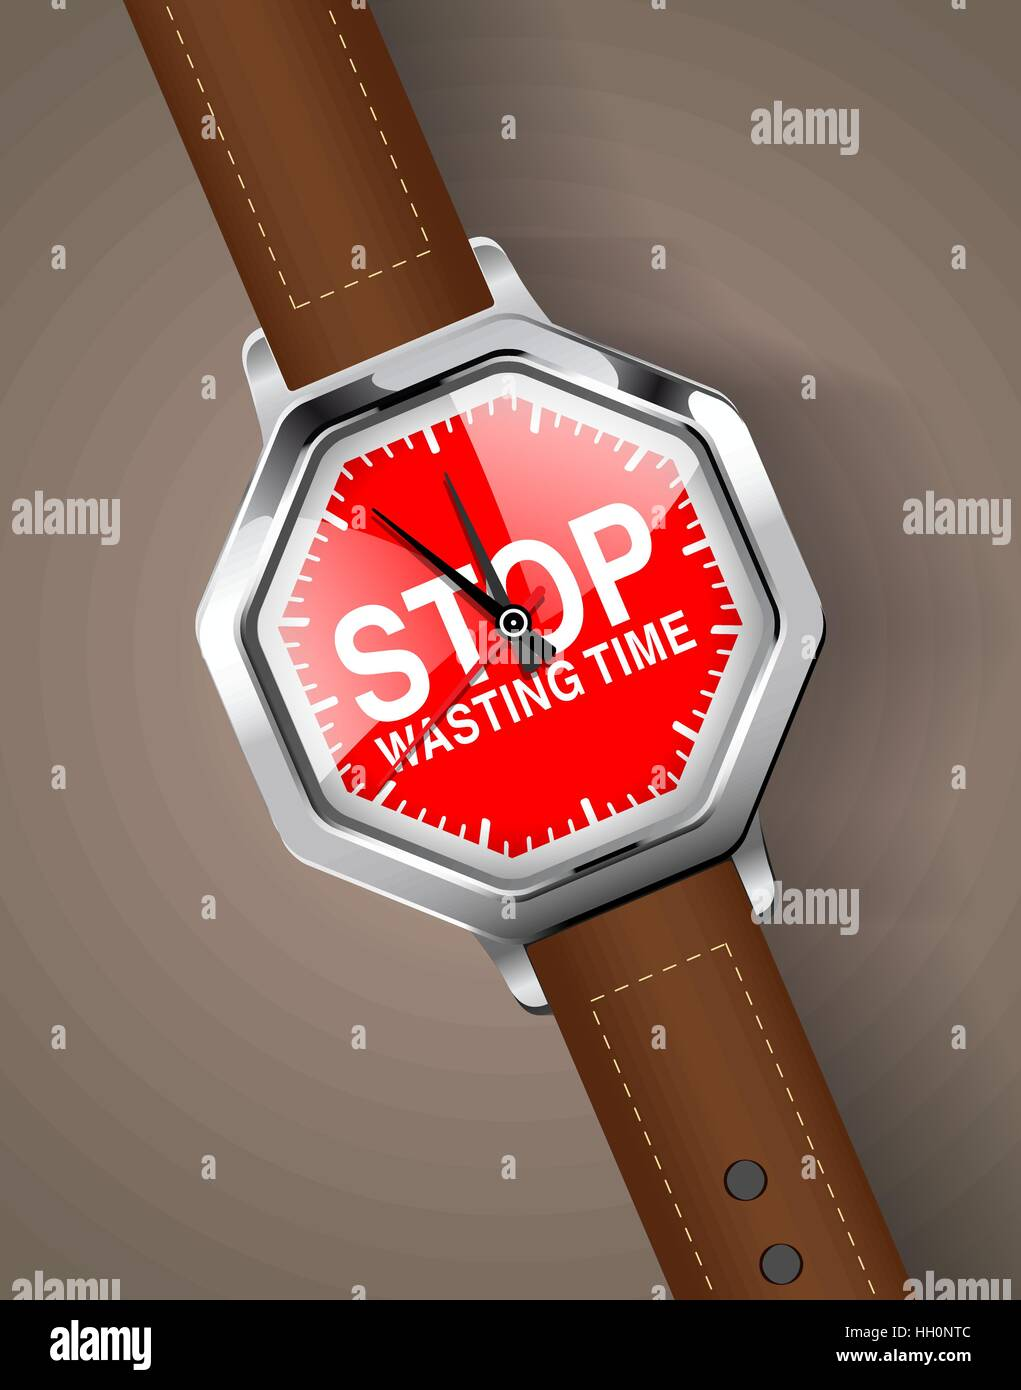 Stopwatch - Stop wasting time - Stock Image